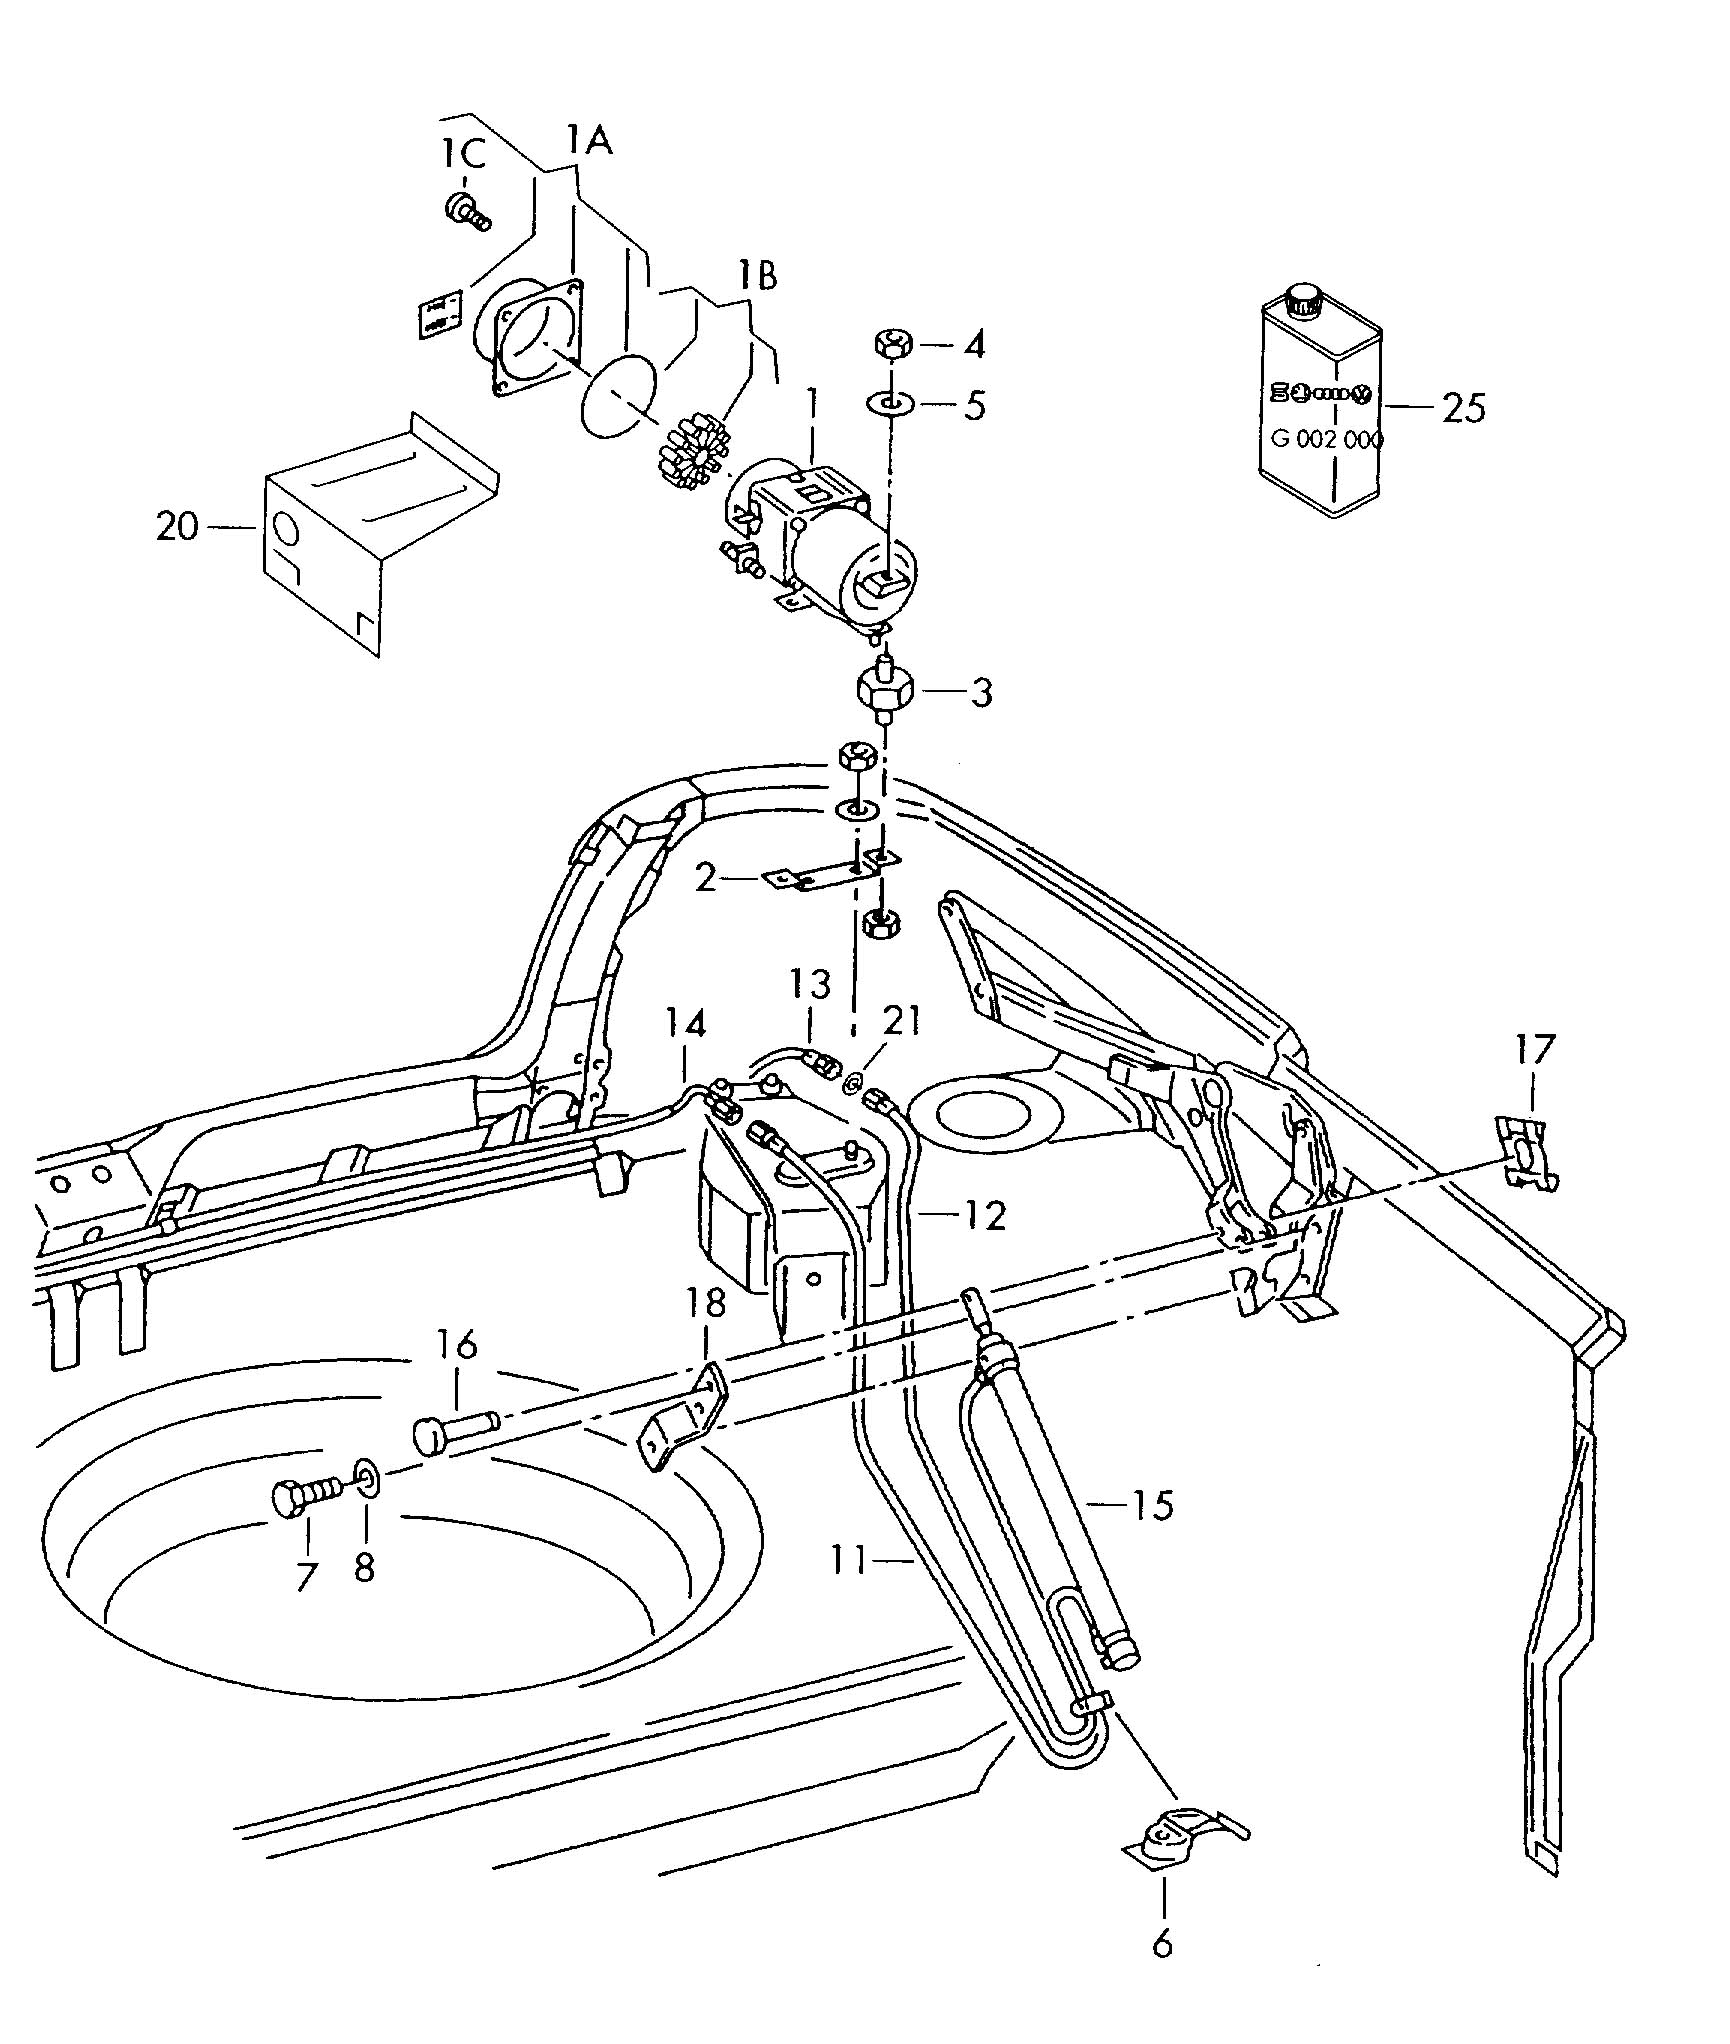 Volkswagen Cabrio Cabriolet Hydraulic System For Convertible Top Operation